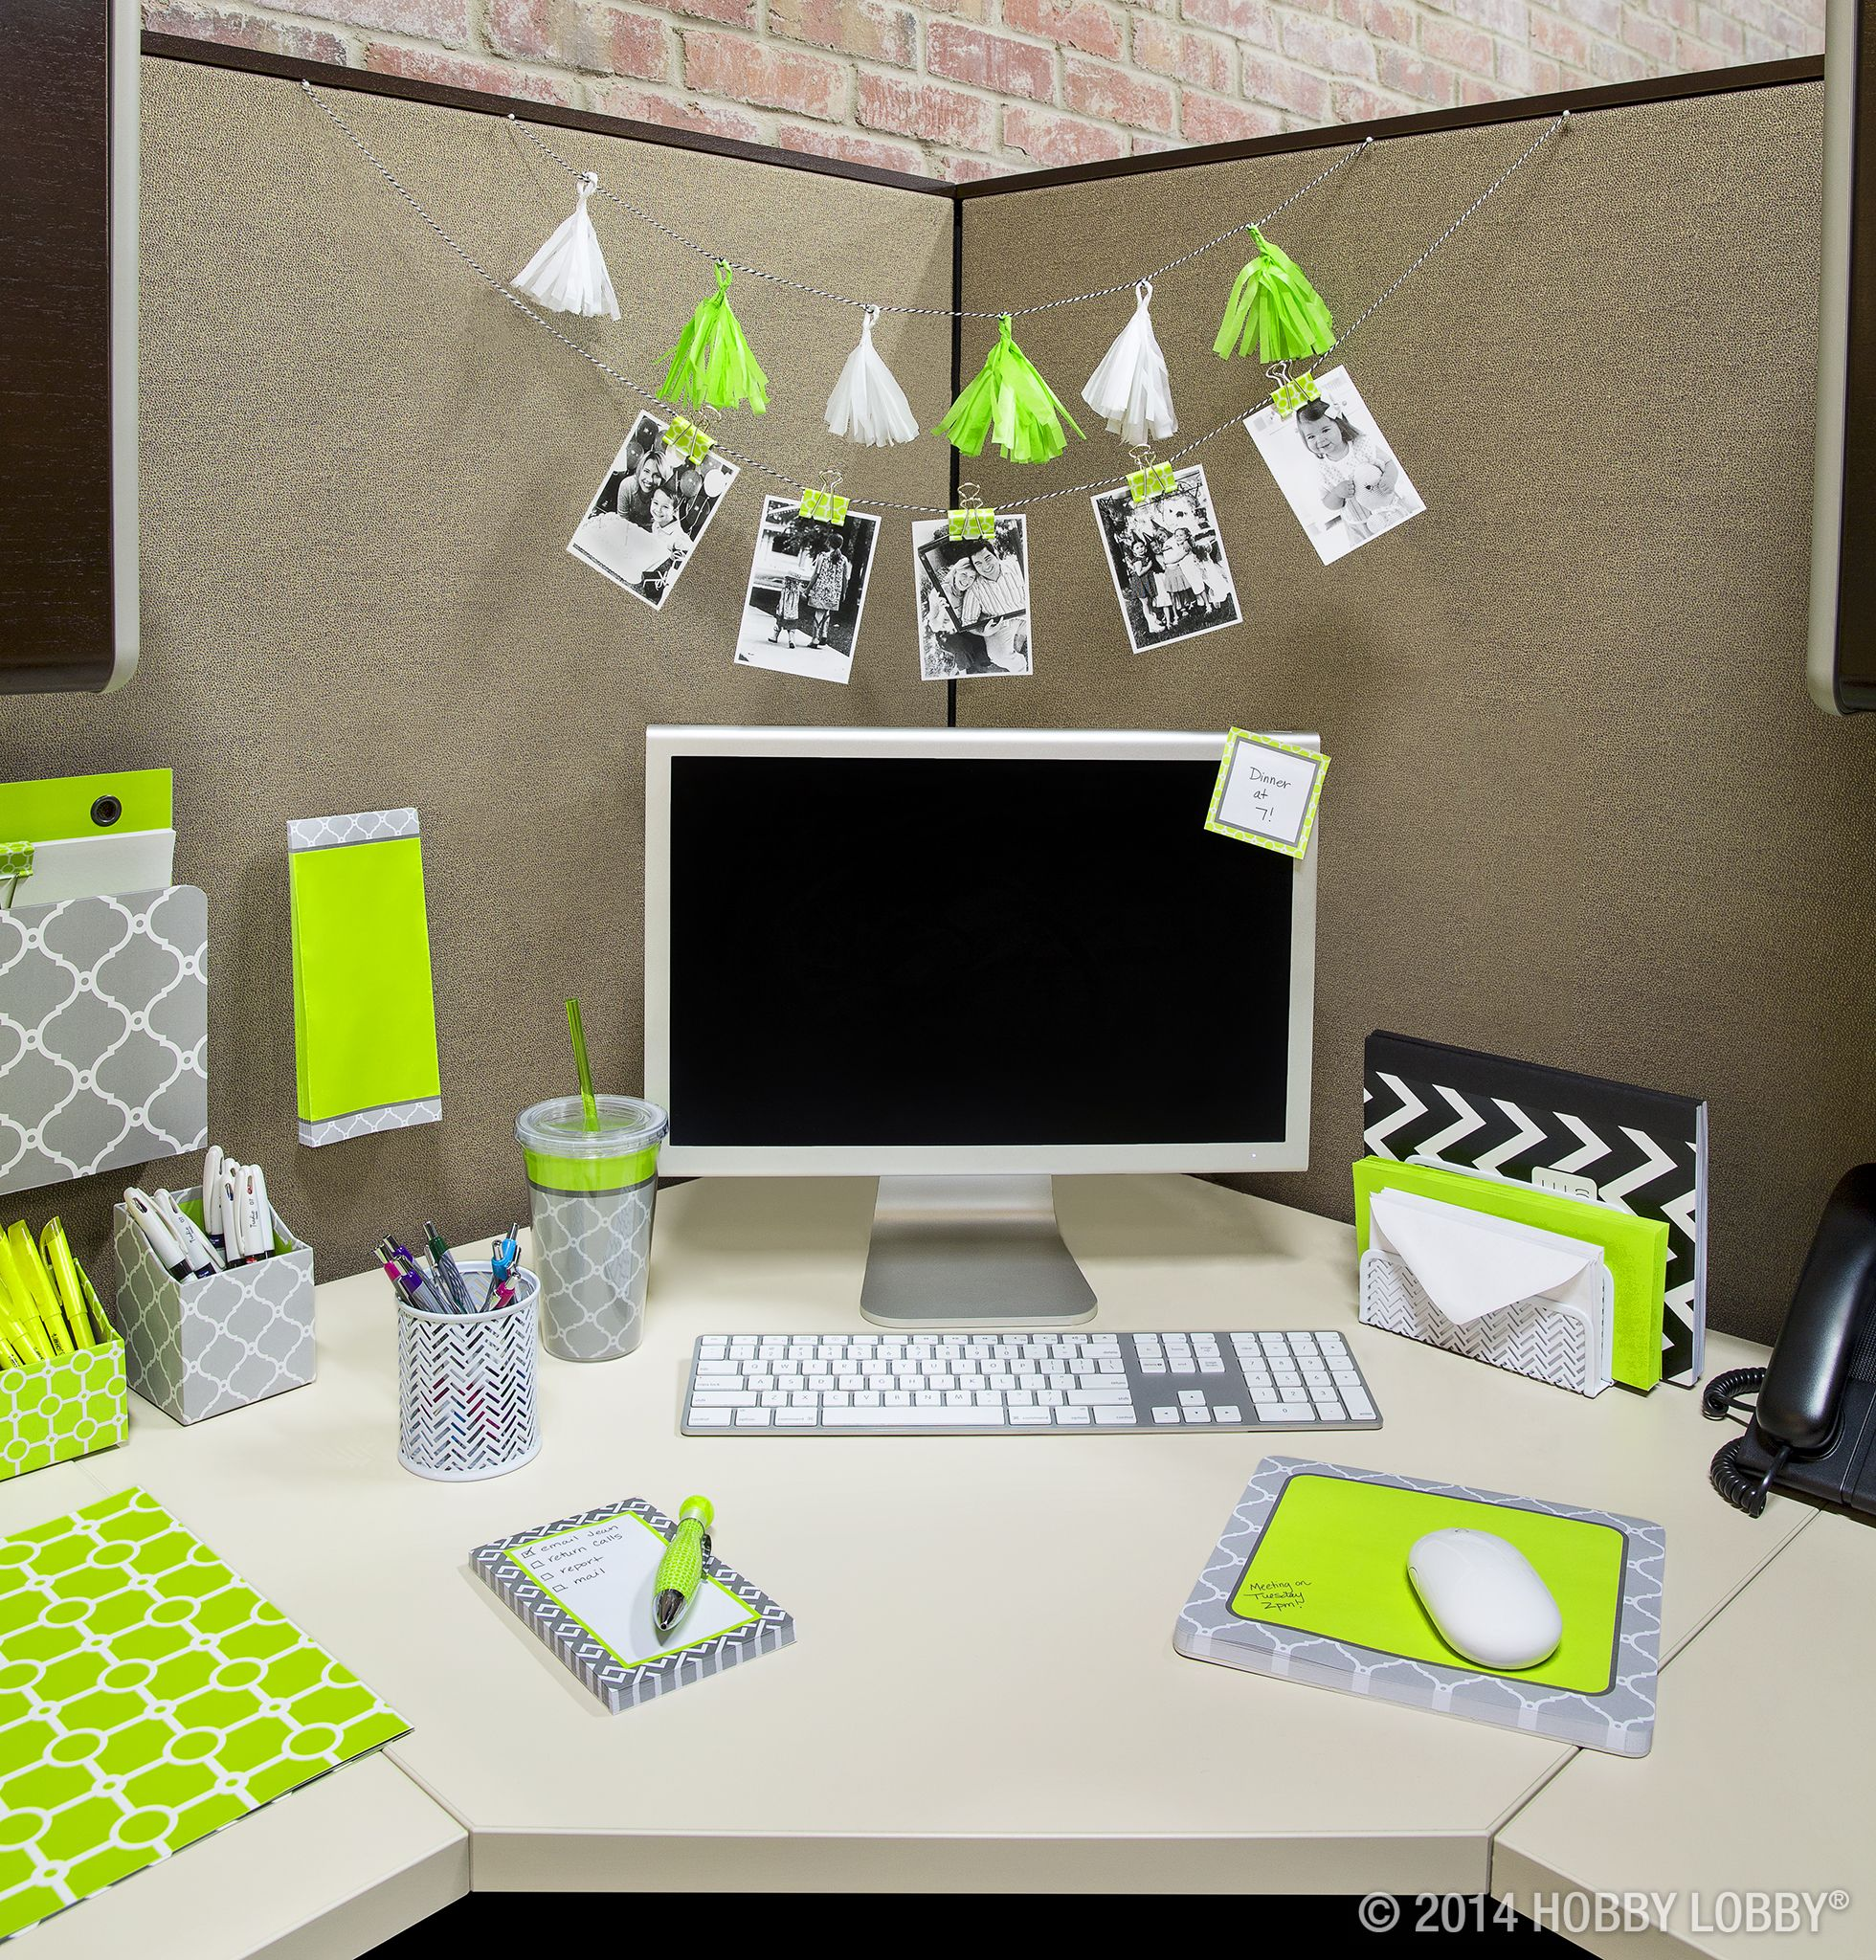 brighten up your cubicle with stylish office accessories! @sandra